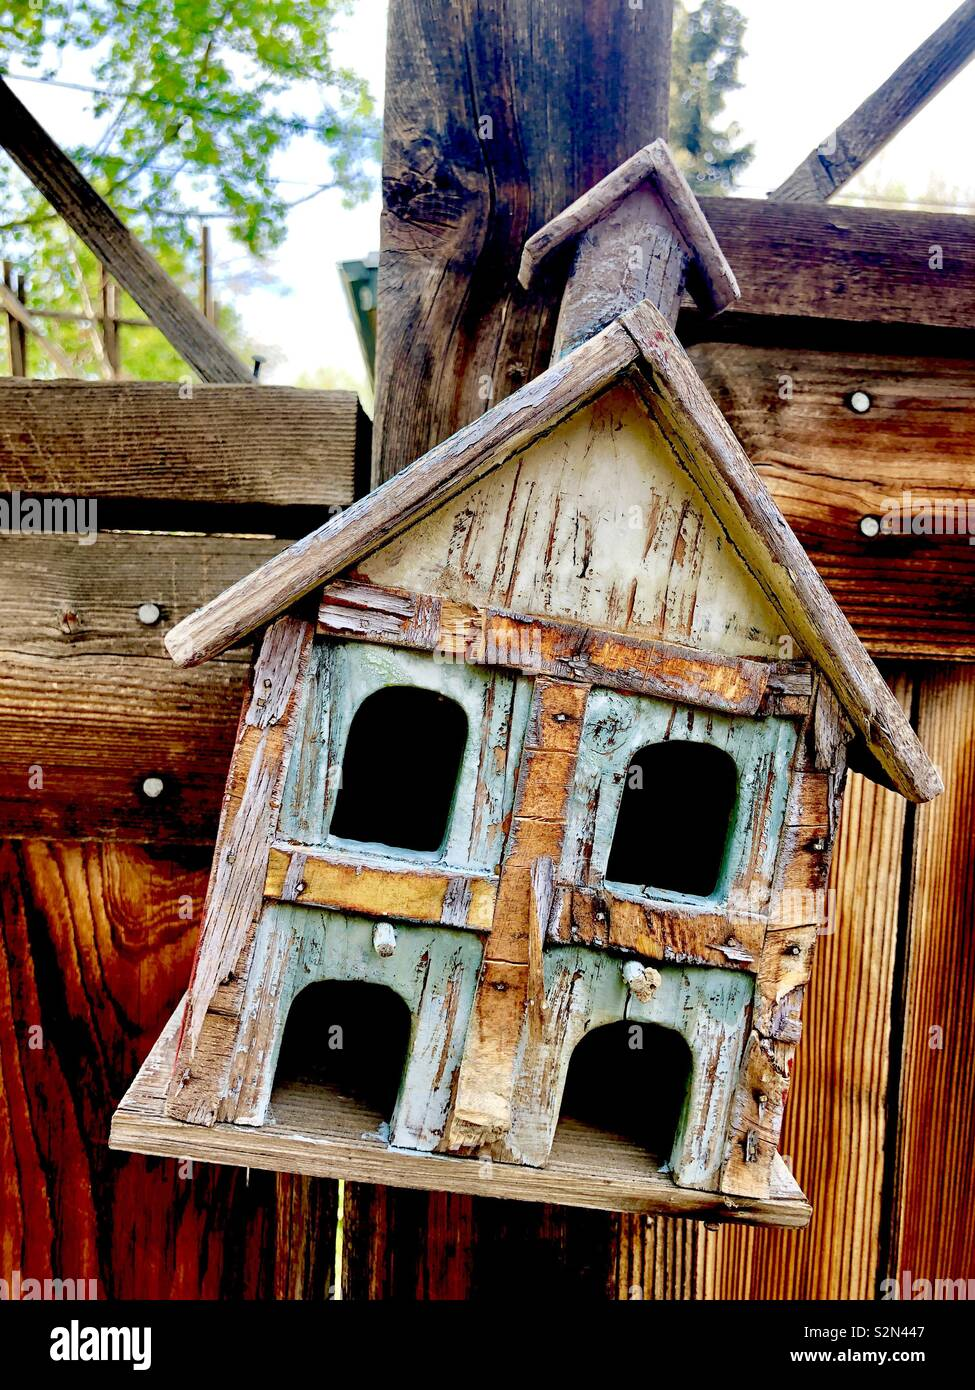 Aging birdhouse - Stock Image